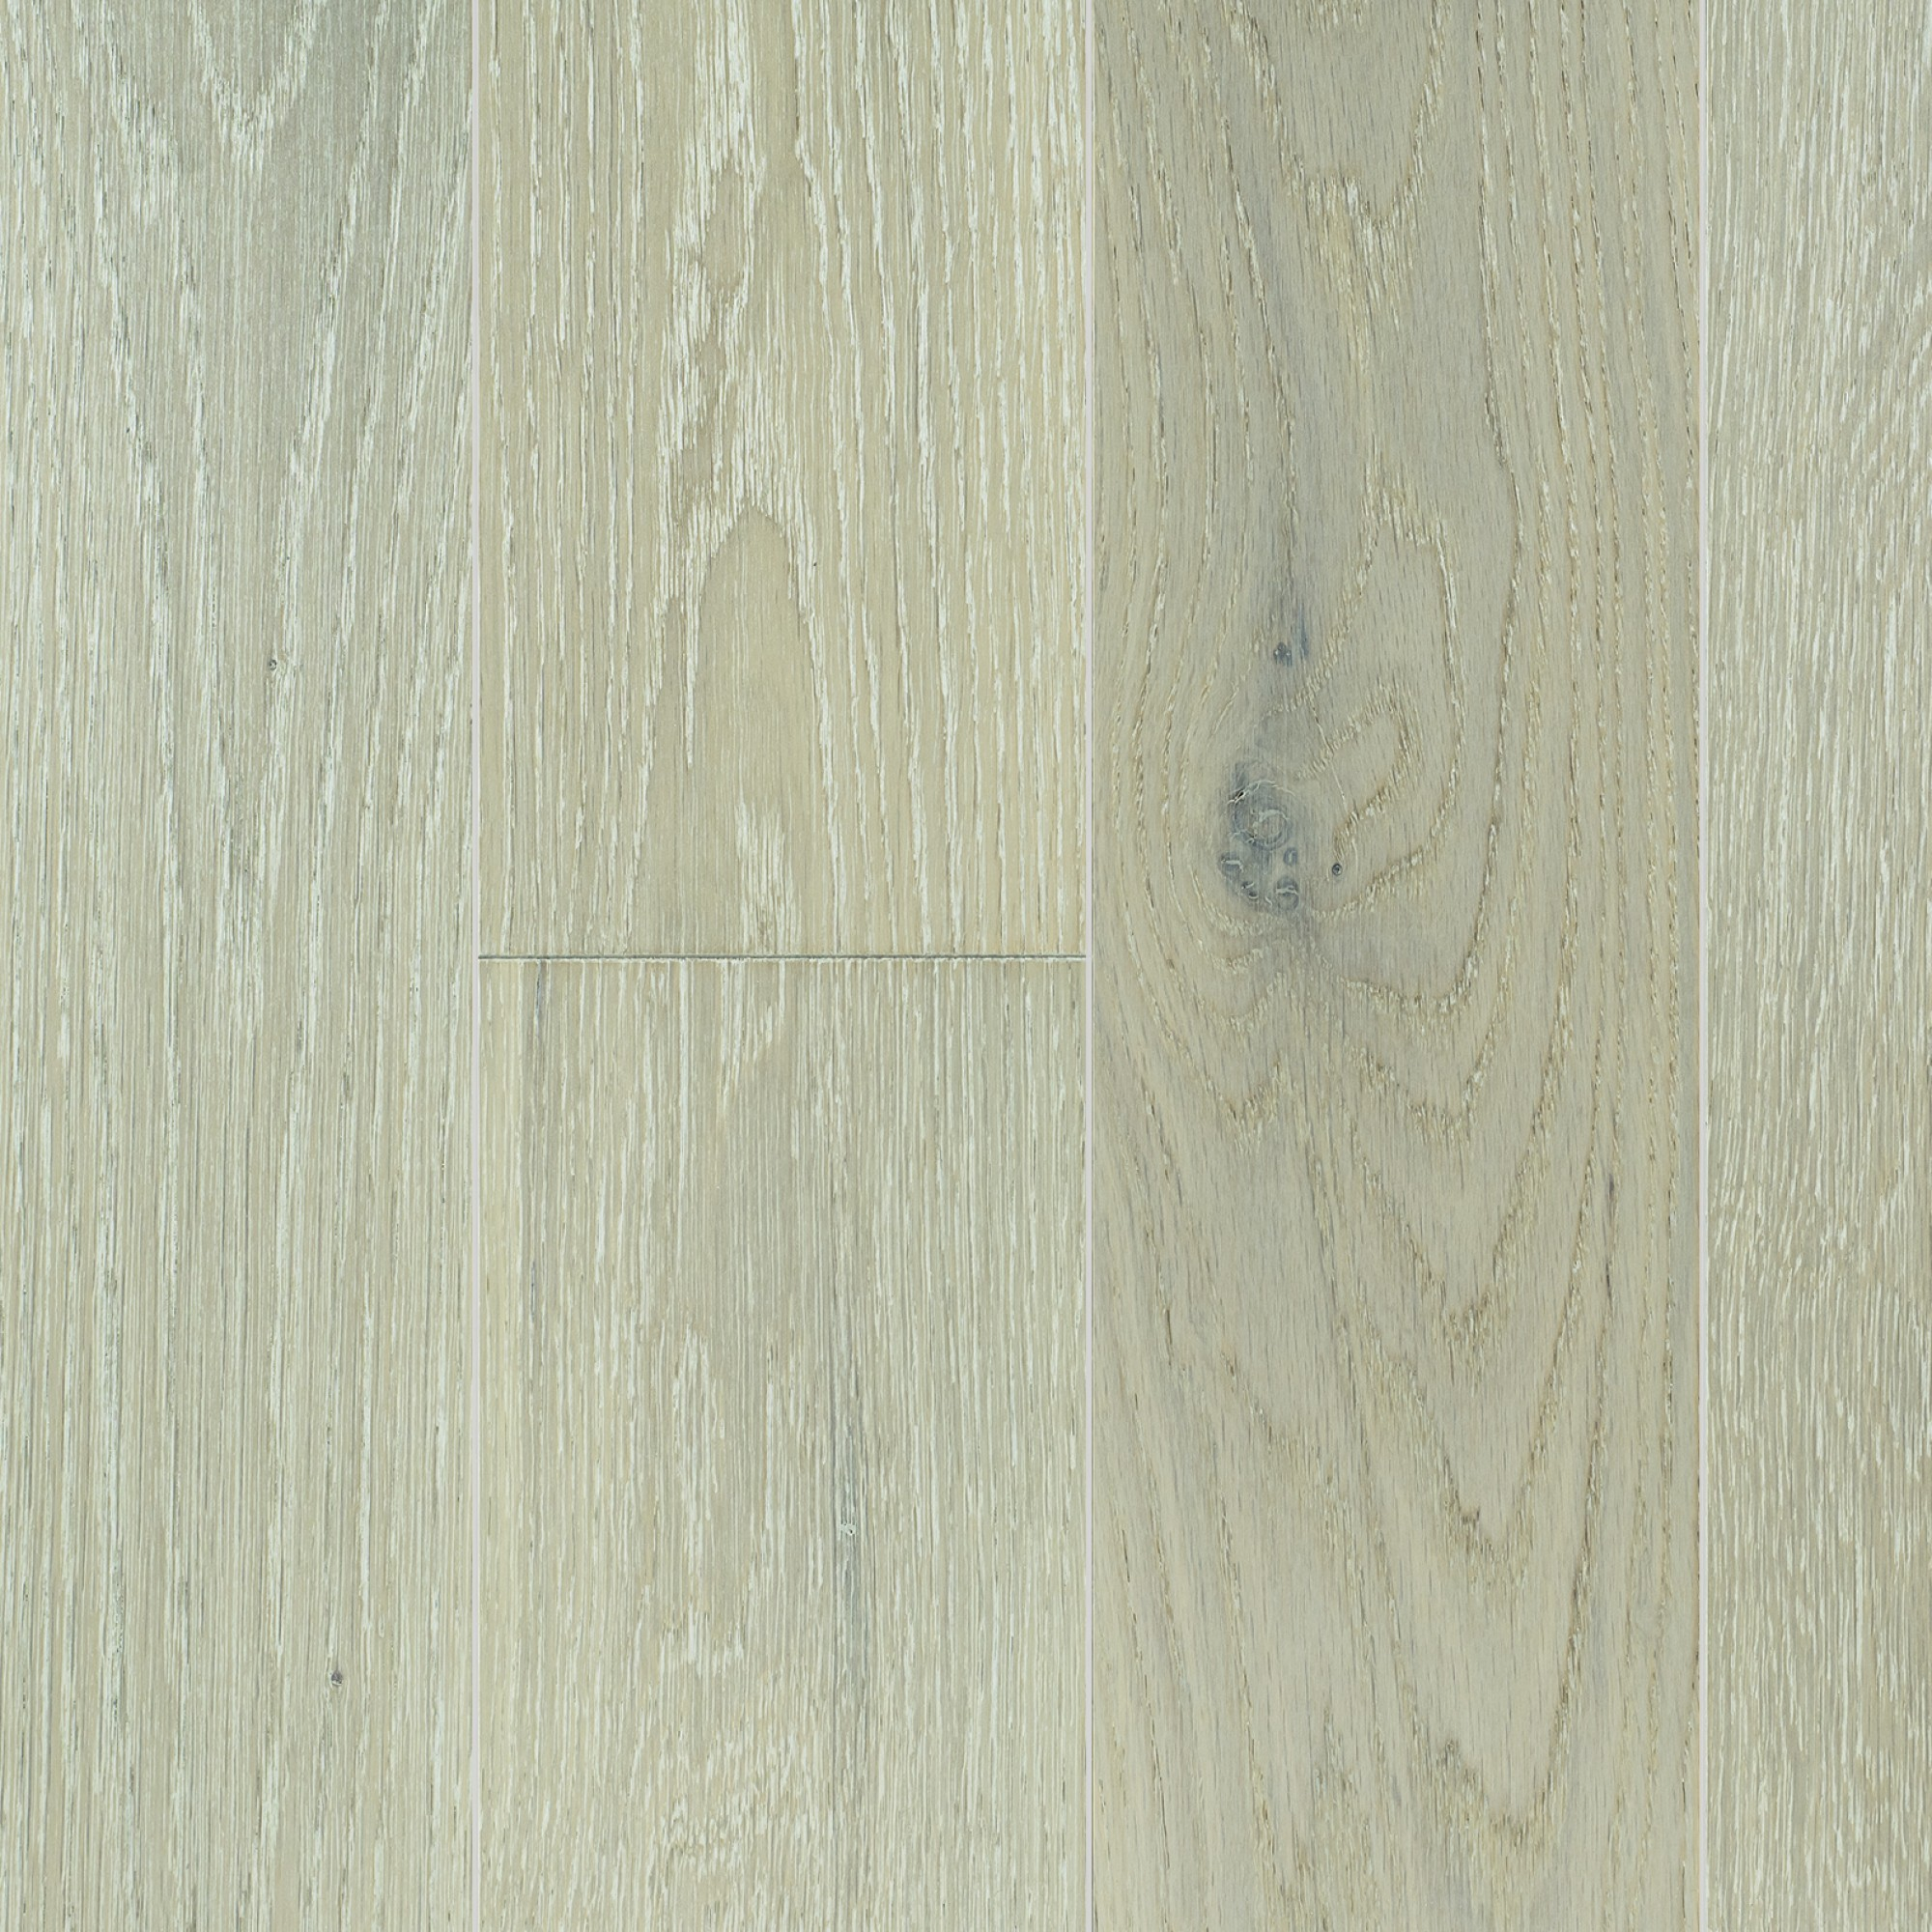 Wire brushed white oak atlantis vintage hardwood for Columbia flooring melbourne ar